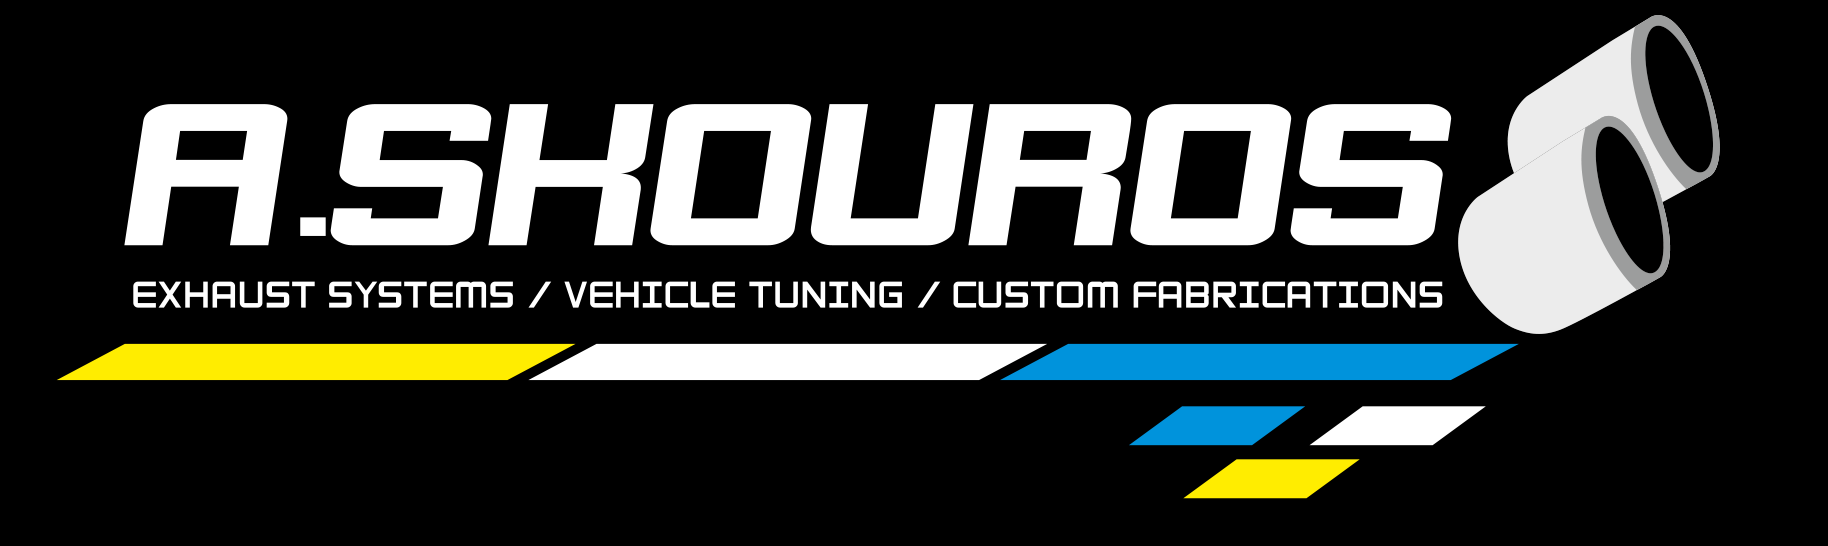 Skouros Exhaust Systems Ltd